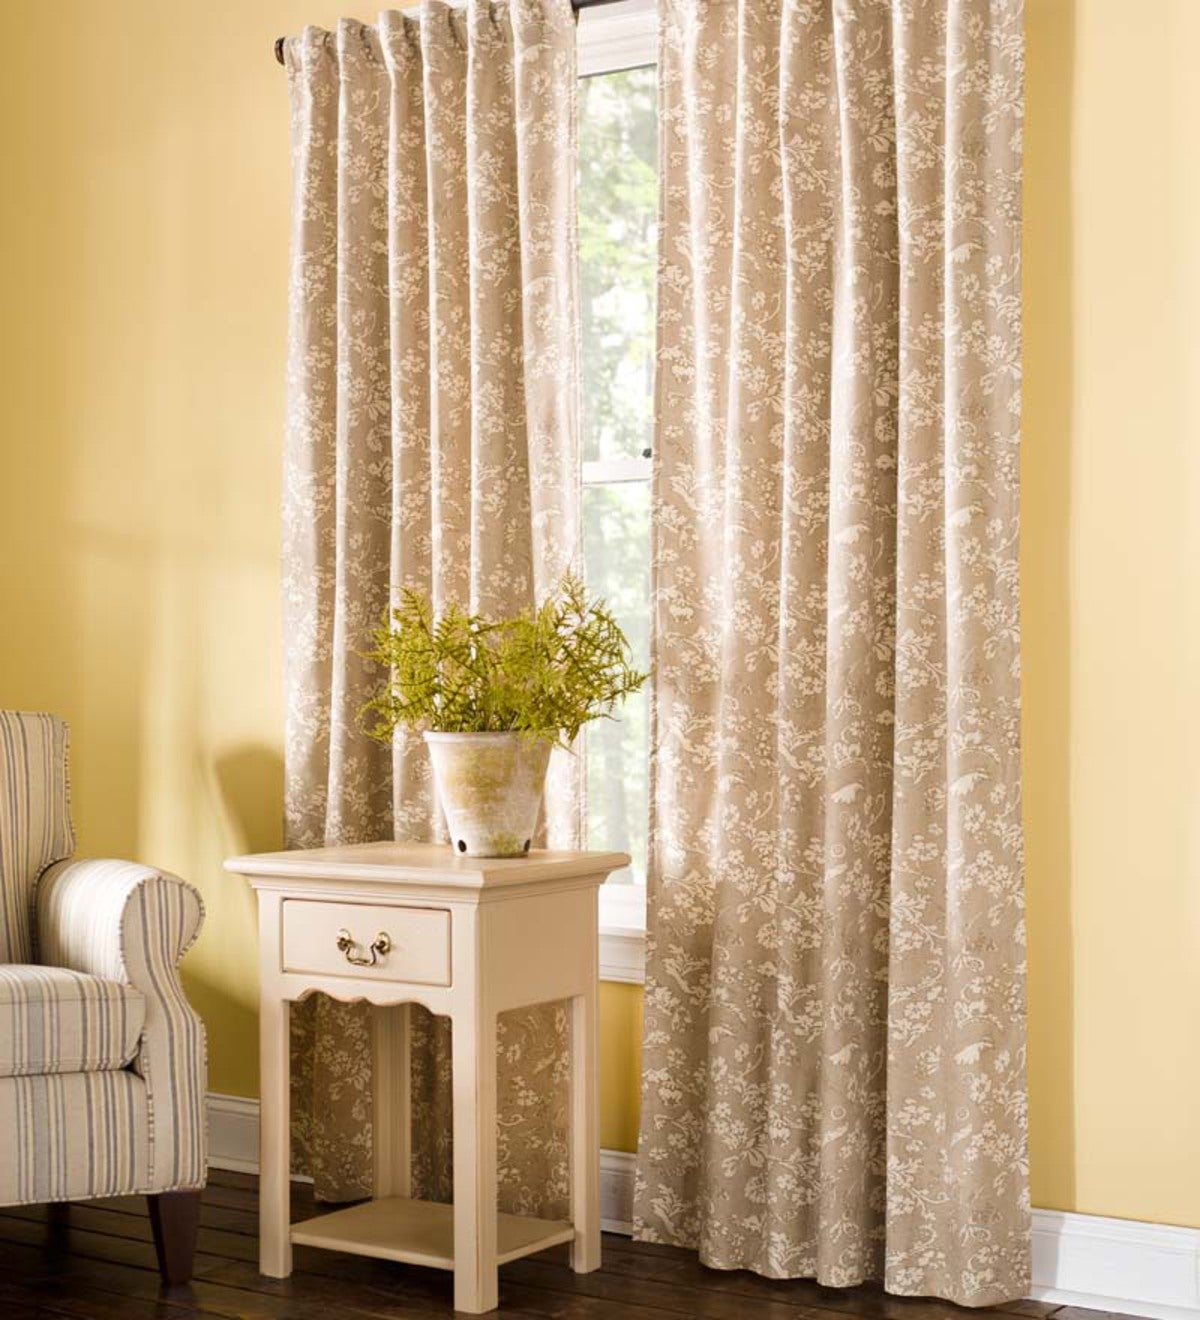 Floral Damask Rod-Pocket Homespun Insulated Curtain Panel, 42&quote;W x 63&quote;L